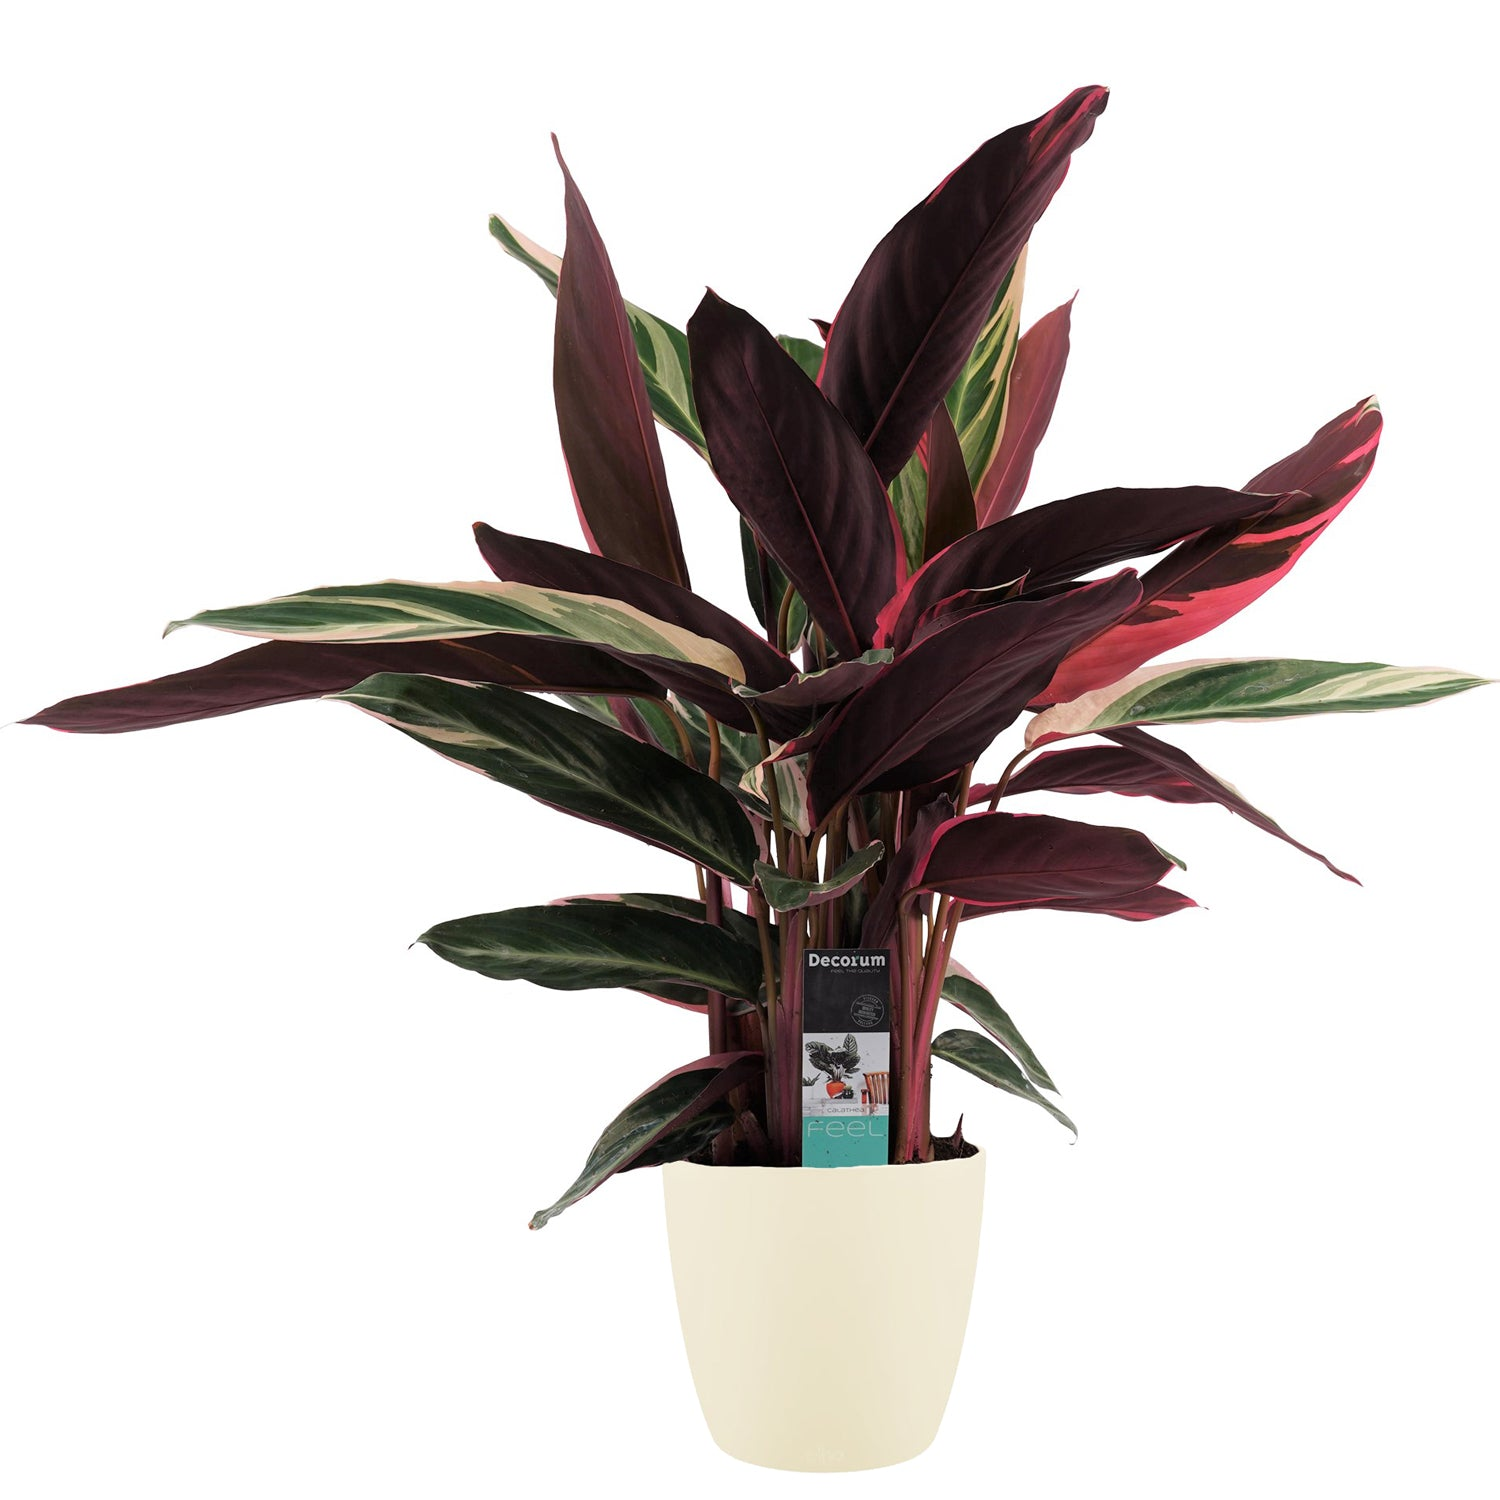 Decorum Calathea Triostar met Elho brussels soap - Hoogte 85 - Diameter pot 19